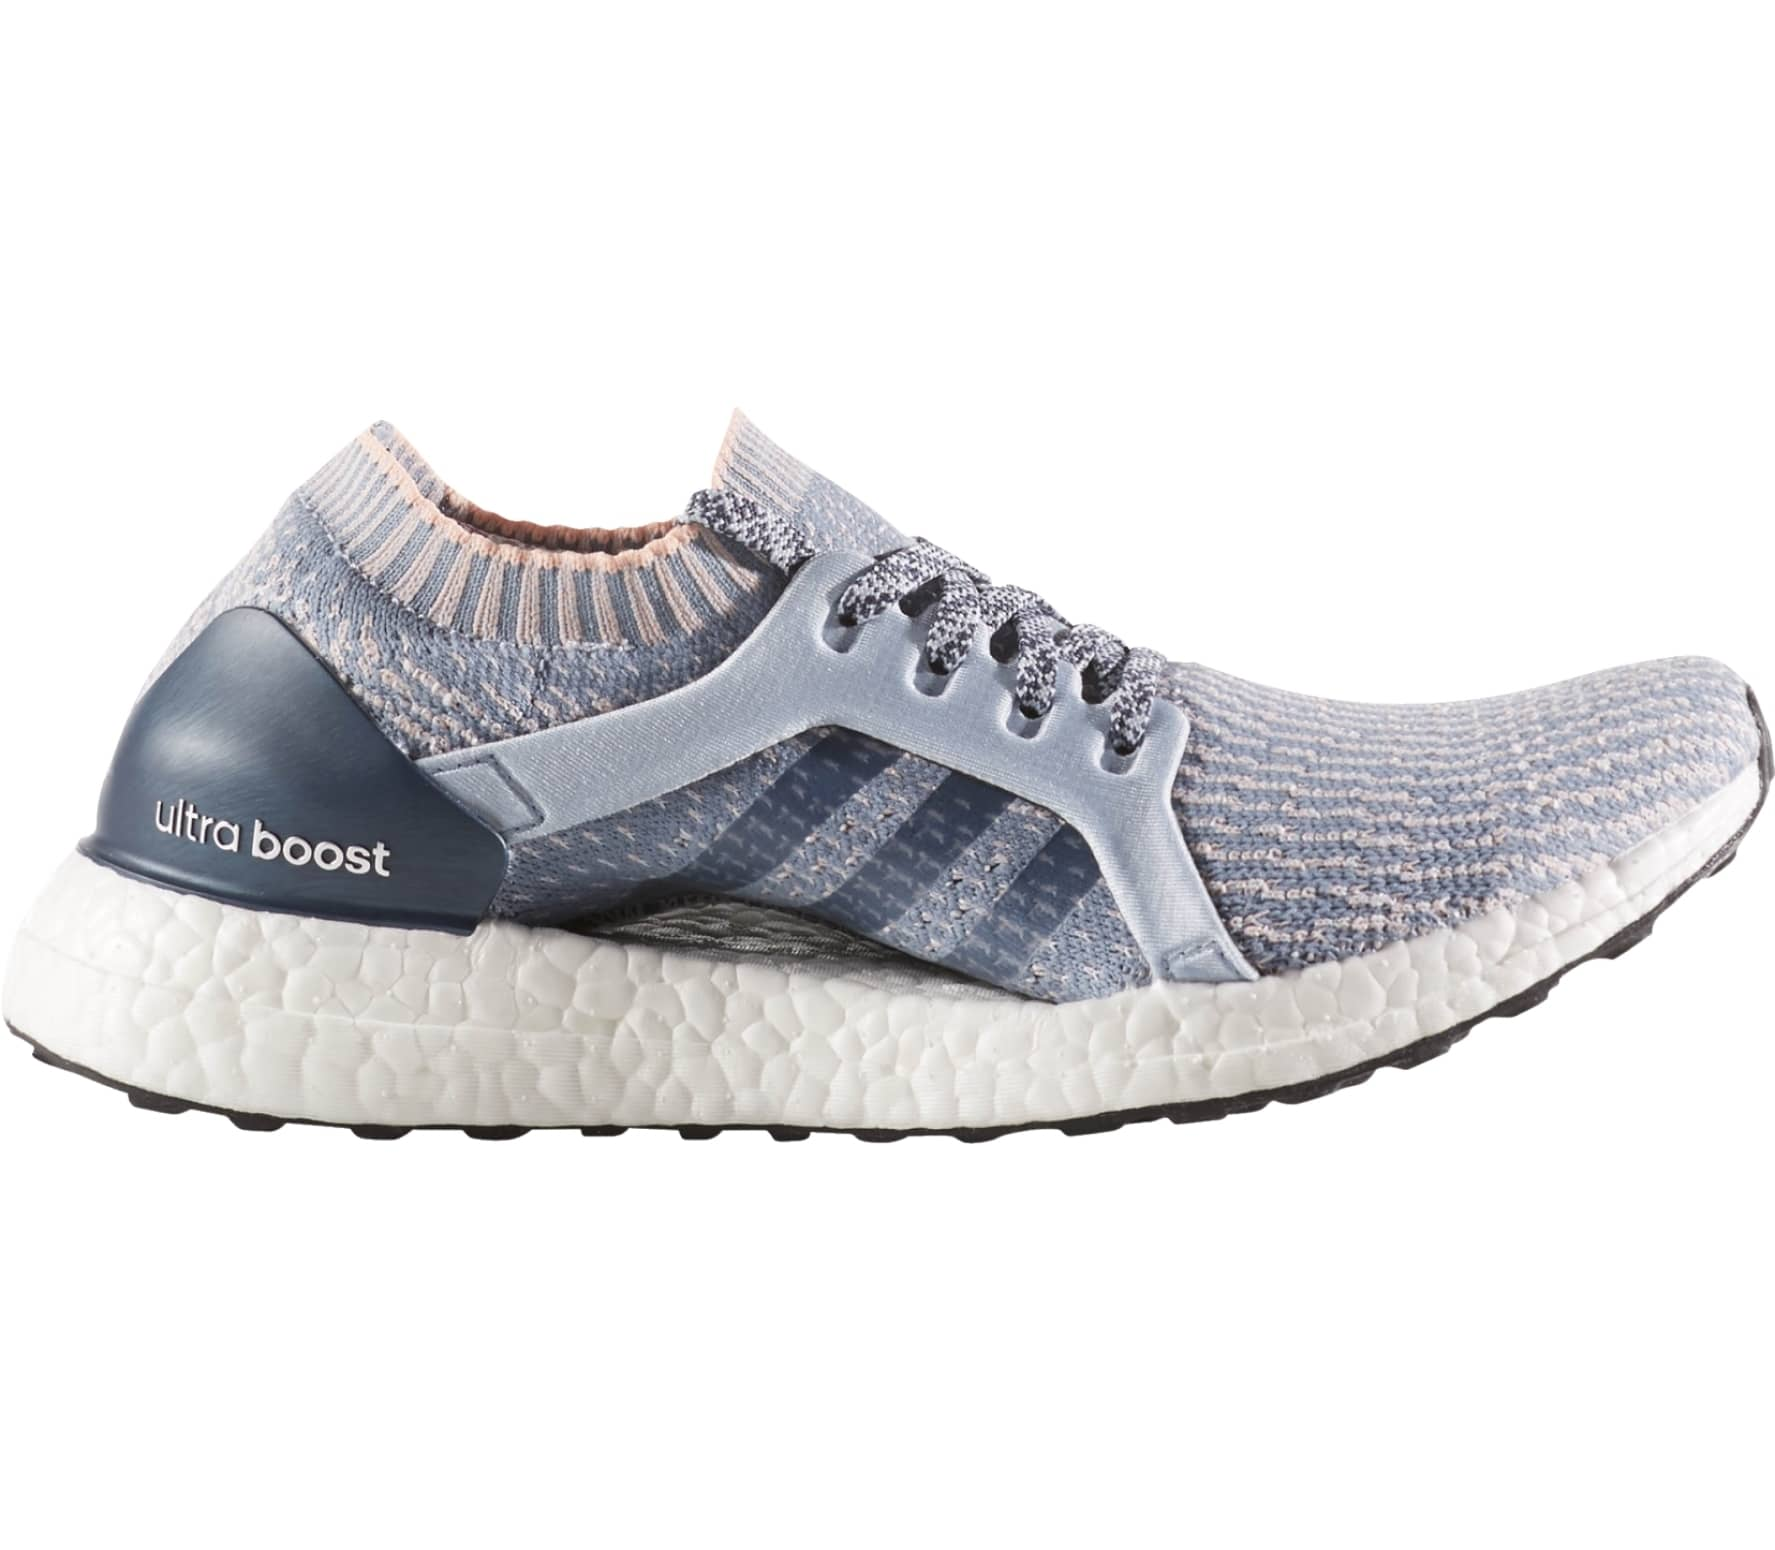 57172ae6f6cad Adidas - Ultra Boost X women s running shoes (light blue grey) - buy ...